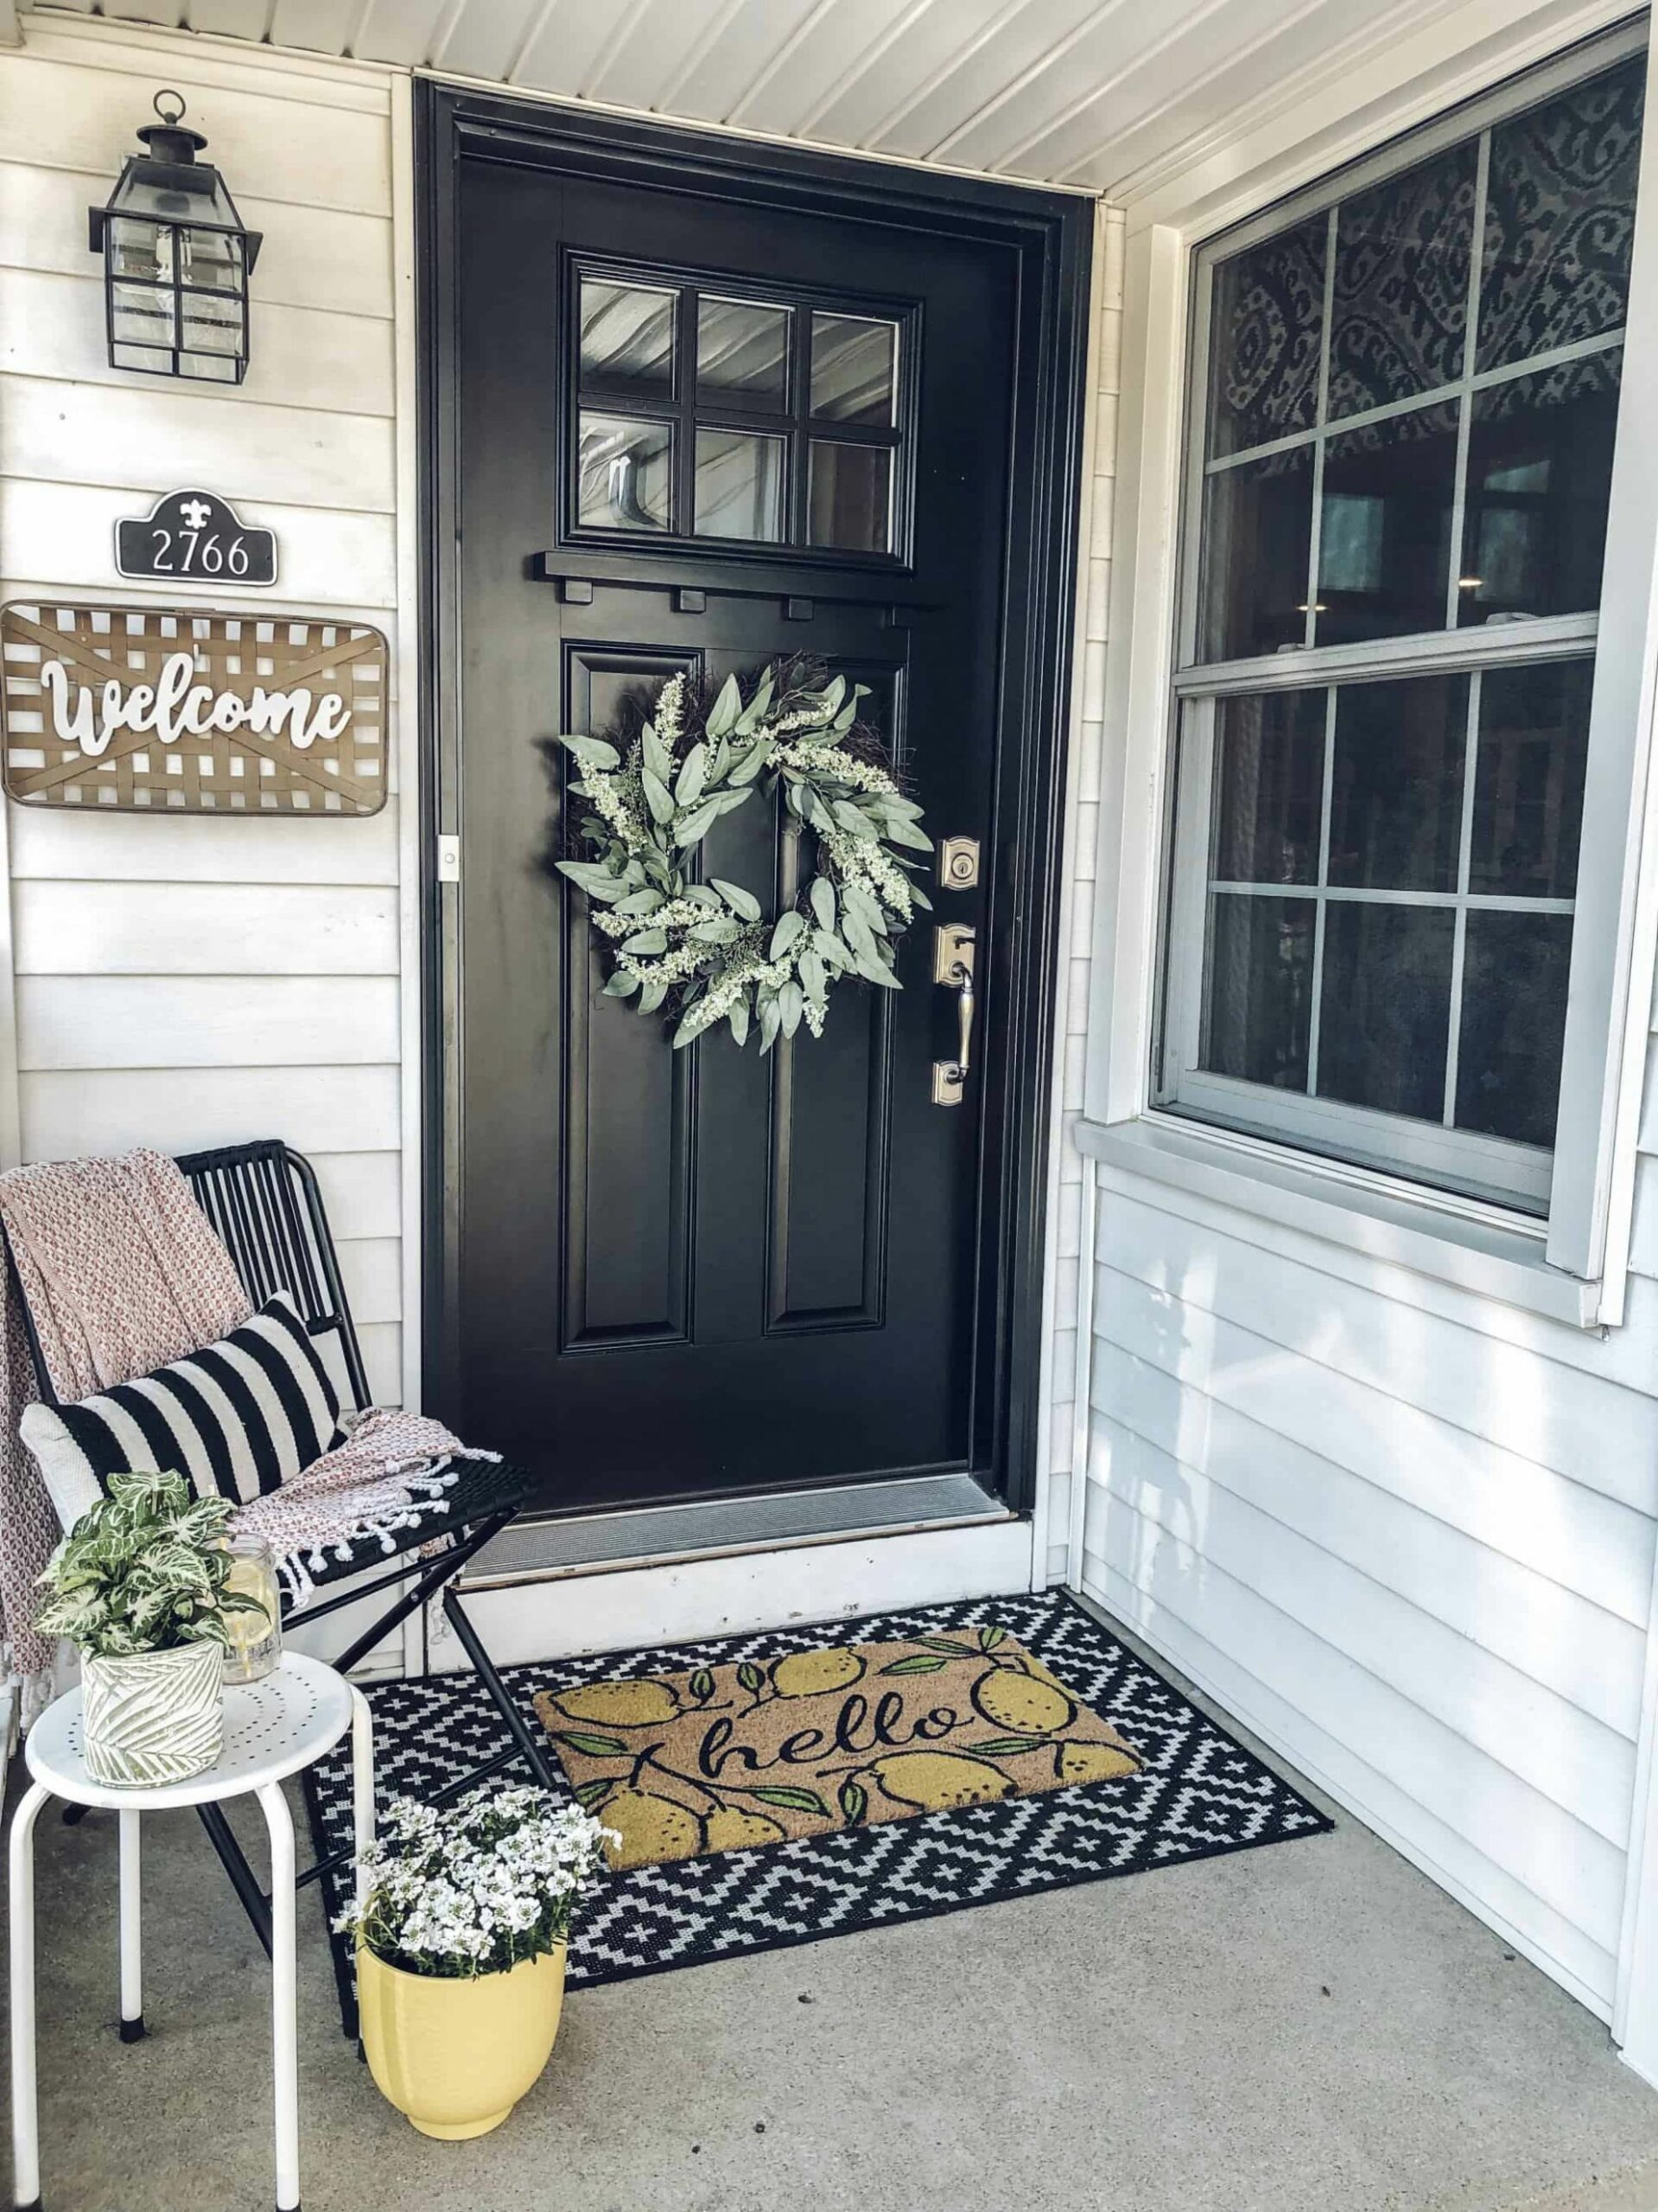 Spring Small Front Porch Decor: 11 Budget Friendly Decorating Ideas ..